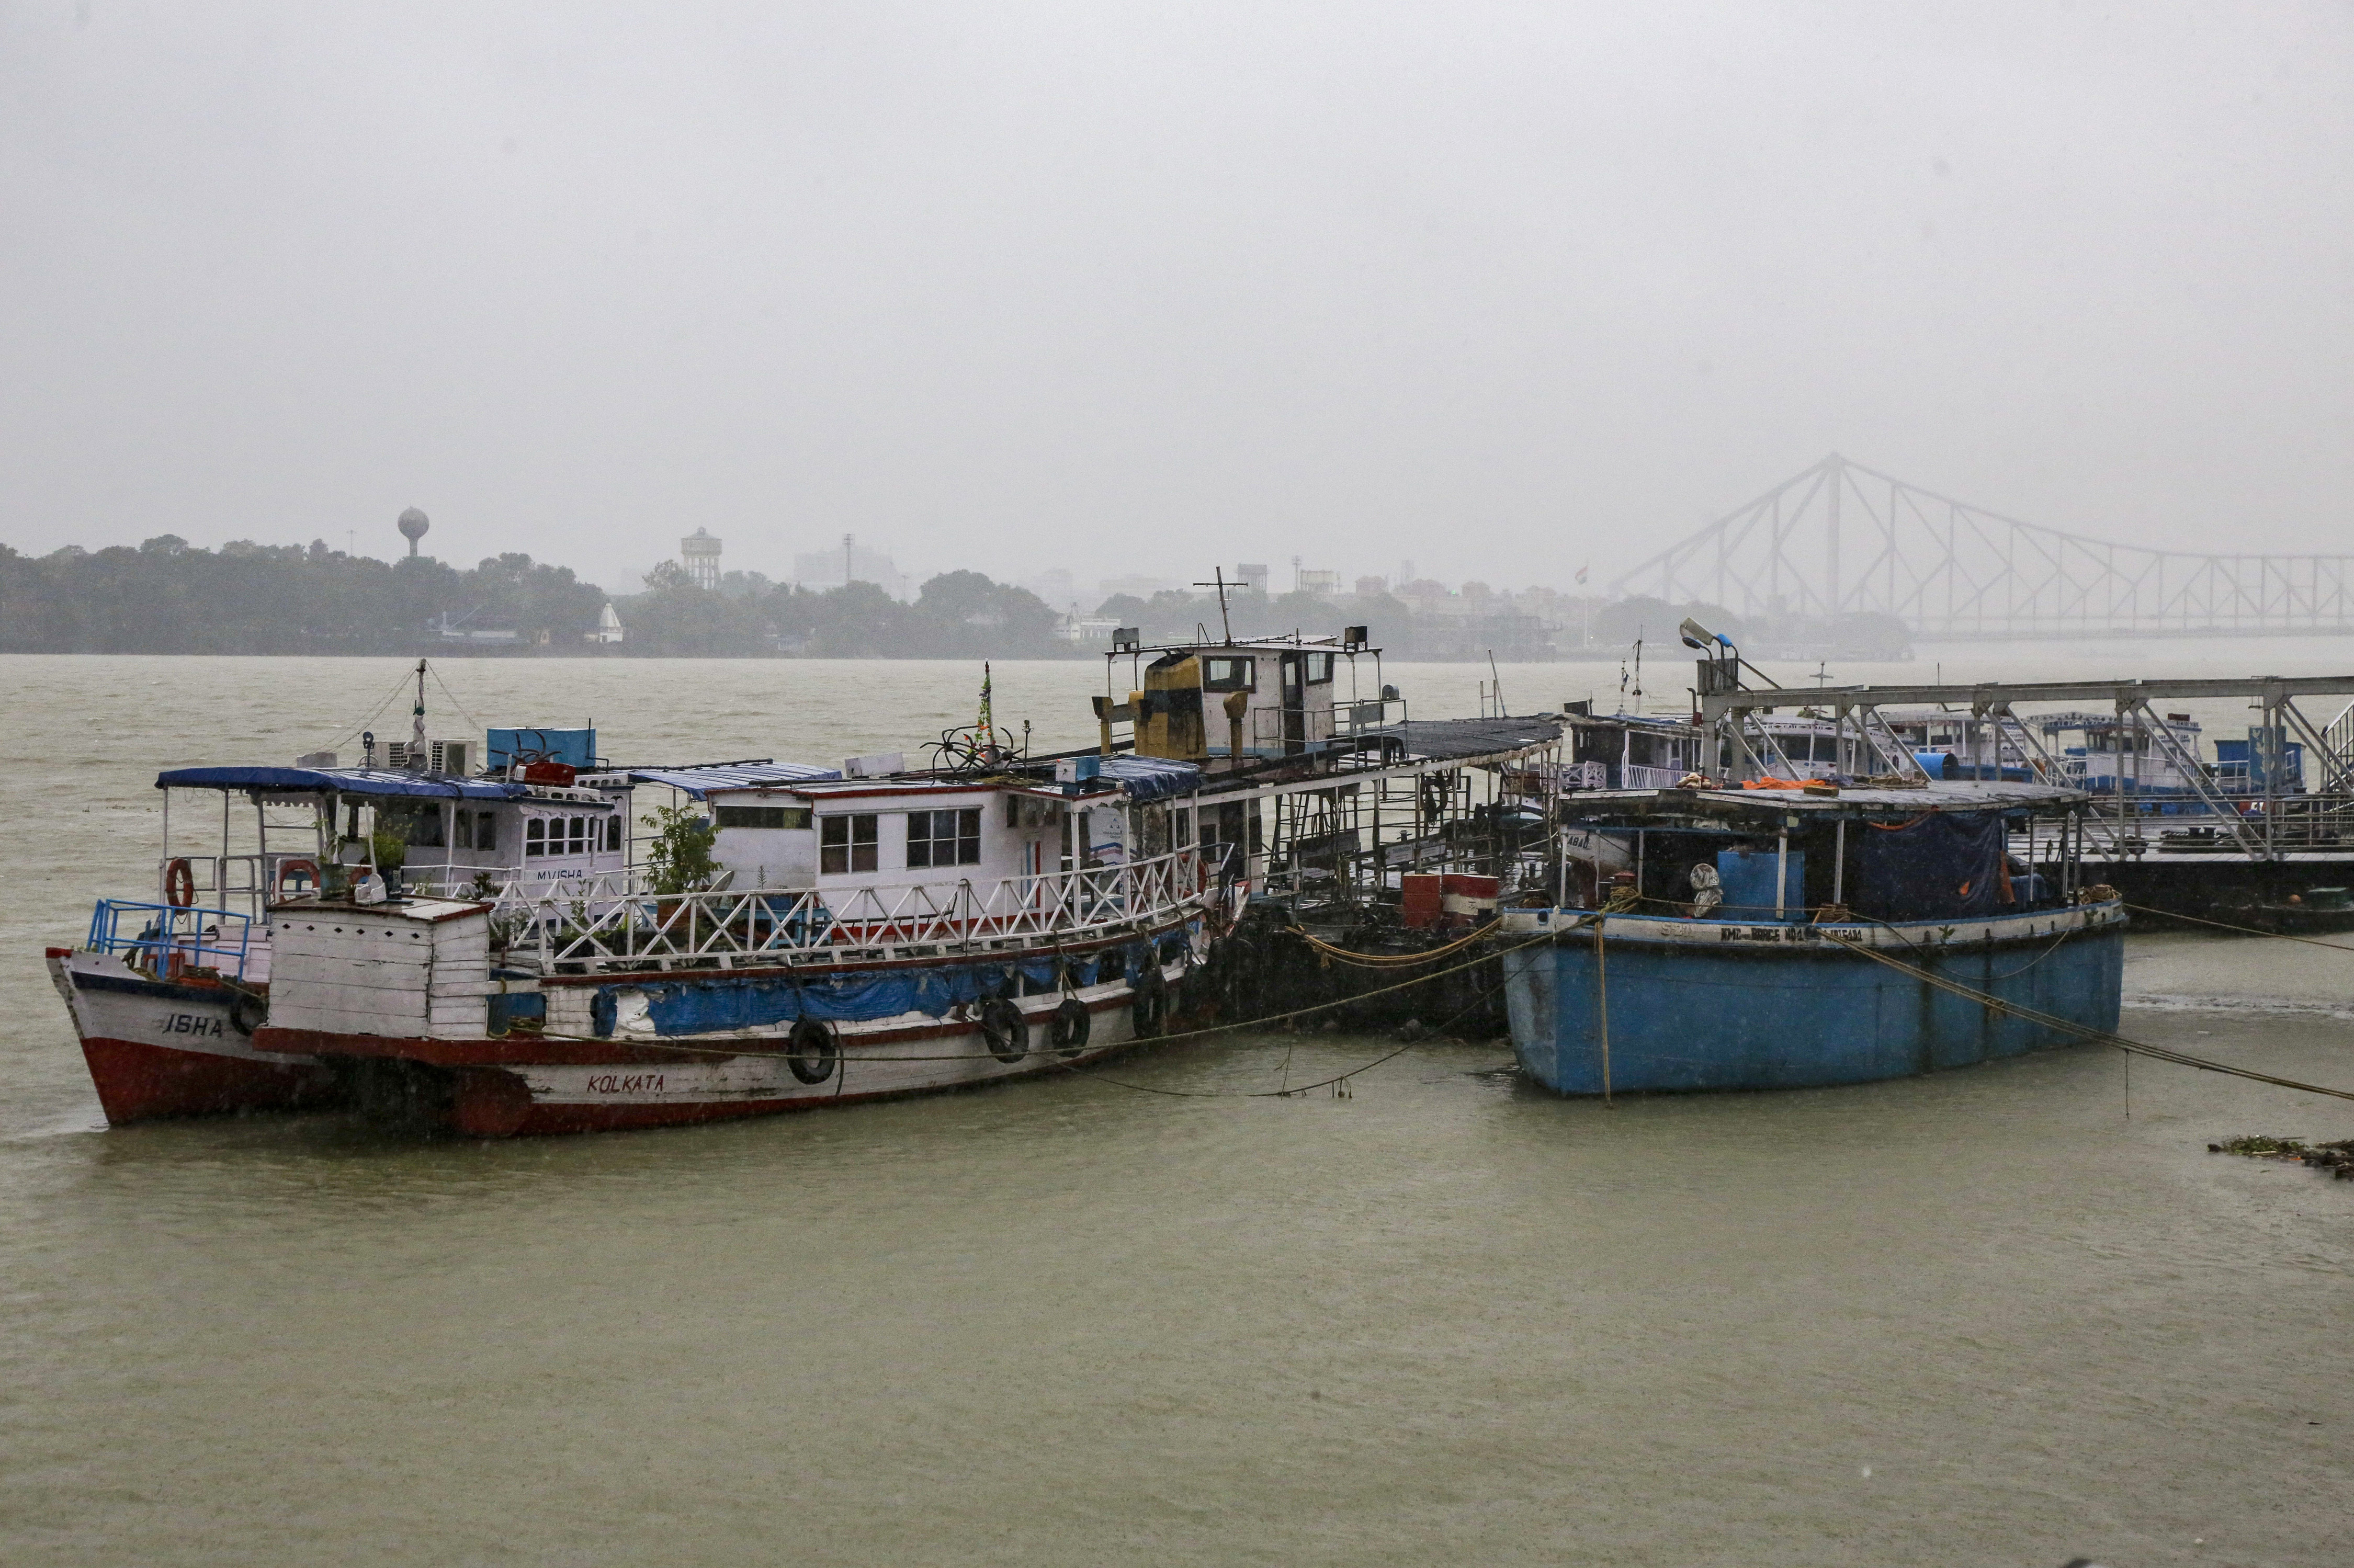 Mechanised boats and ferries stand on the Hooghly River in Kolkata, India, Saturday. Authorities in nearby Bangladesh put more than 50,000 volunteers on standby and readied about 5000 shelters as cyclone Bulbul was to hit.